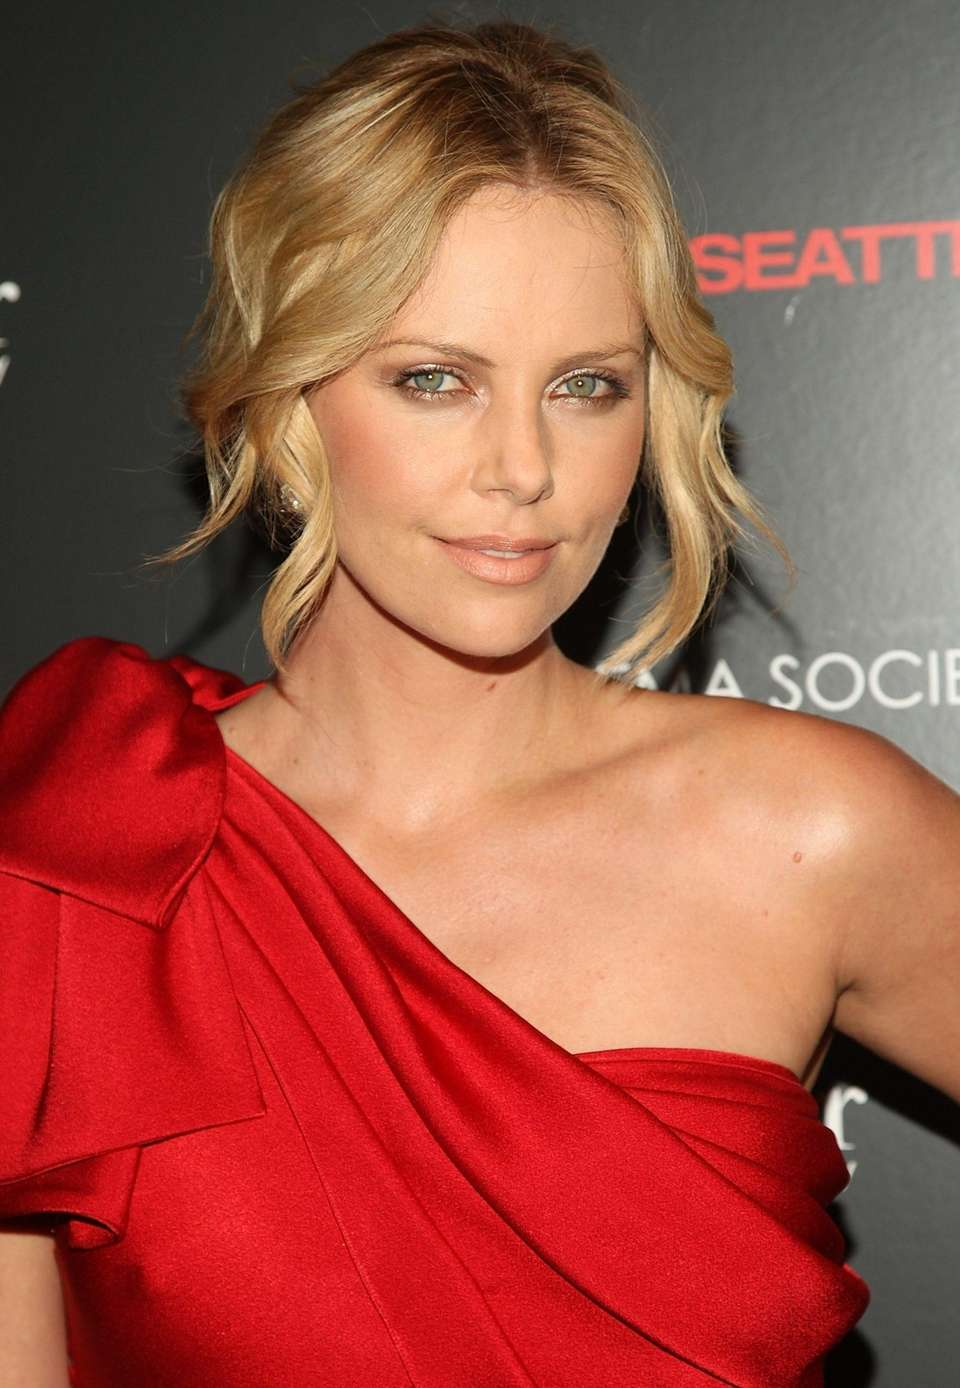 Charlize Theron began her career as a model